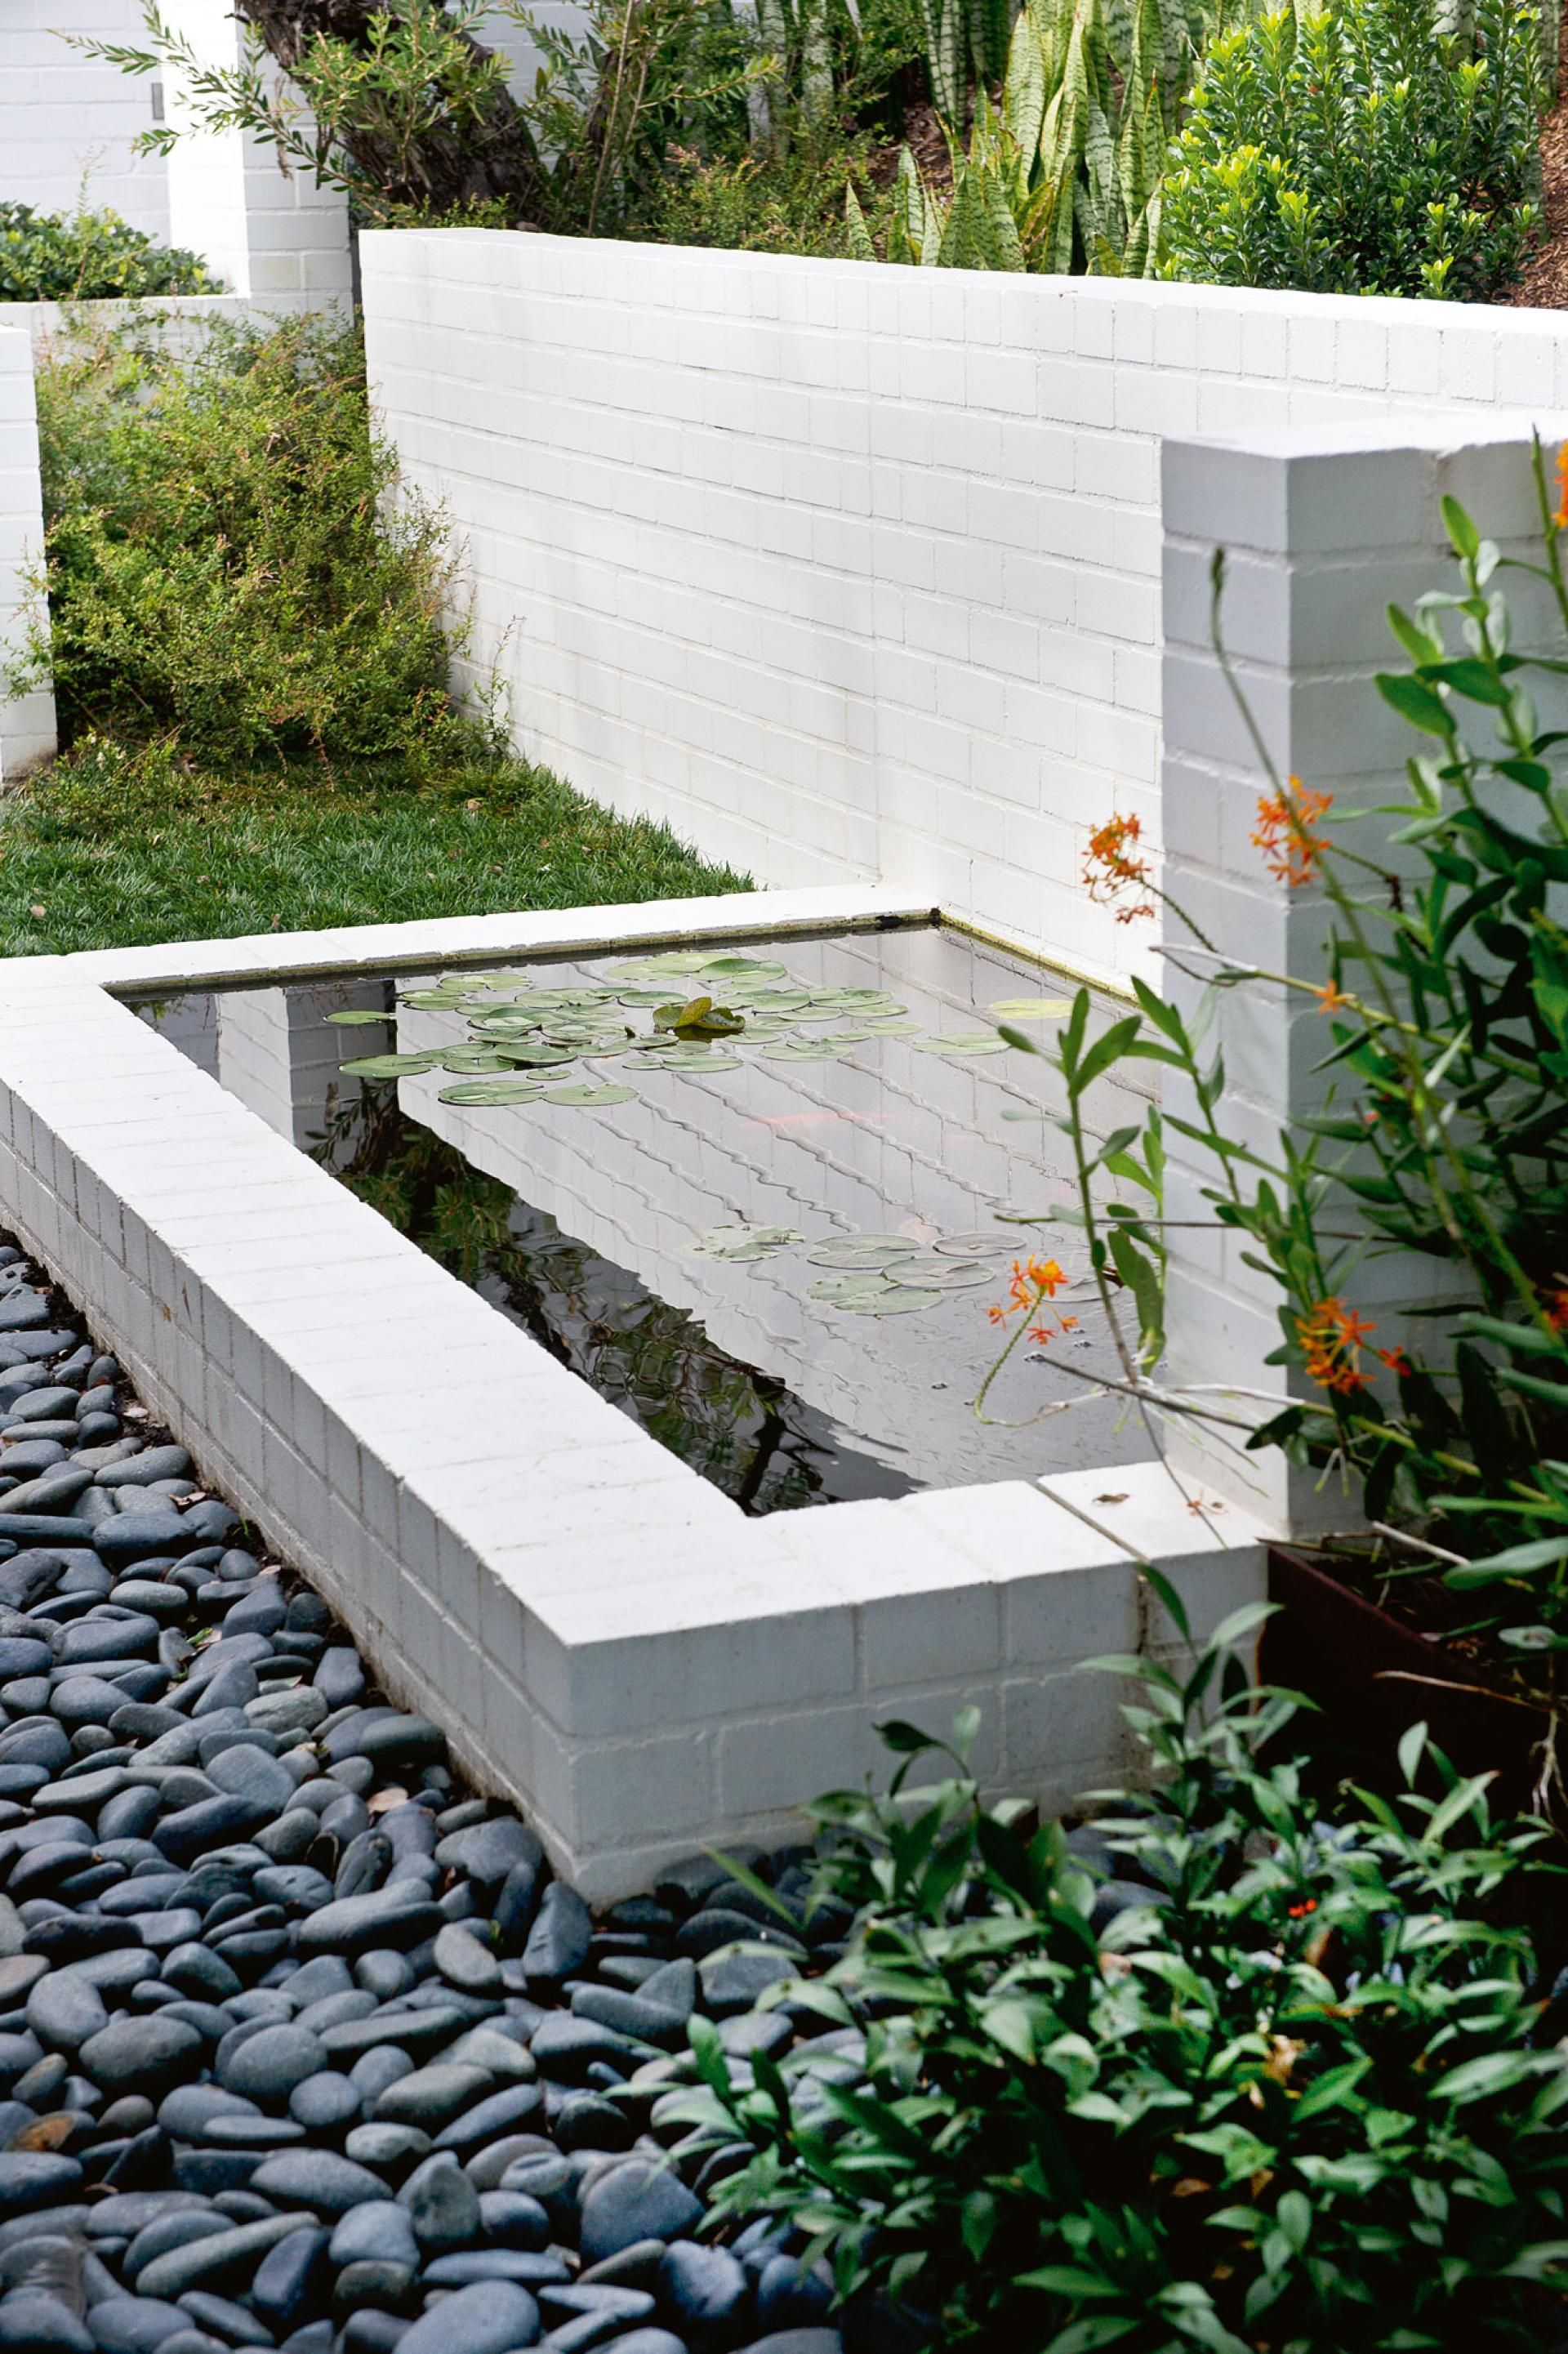 This Japanese Inspired Garden Is By Michael Cooke Of Michael Cook Garden  Design. See More Ideas From This Garden At Insideout.com.au.